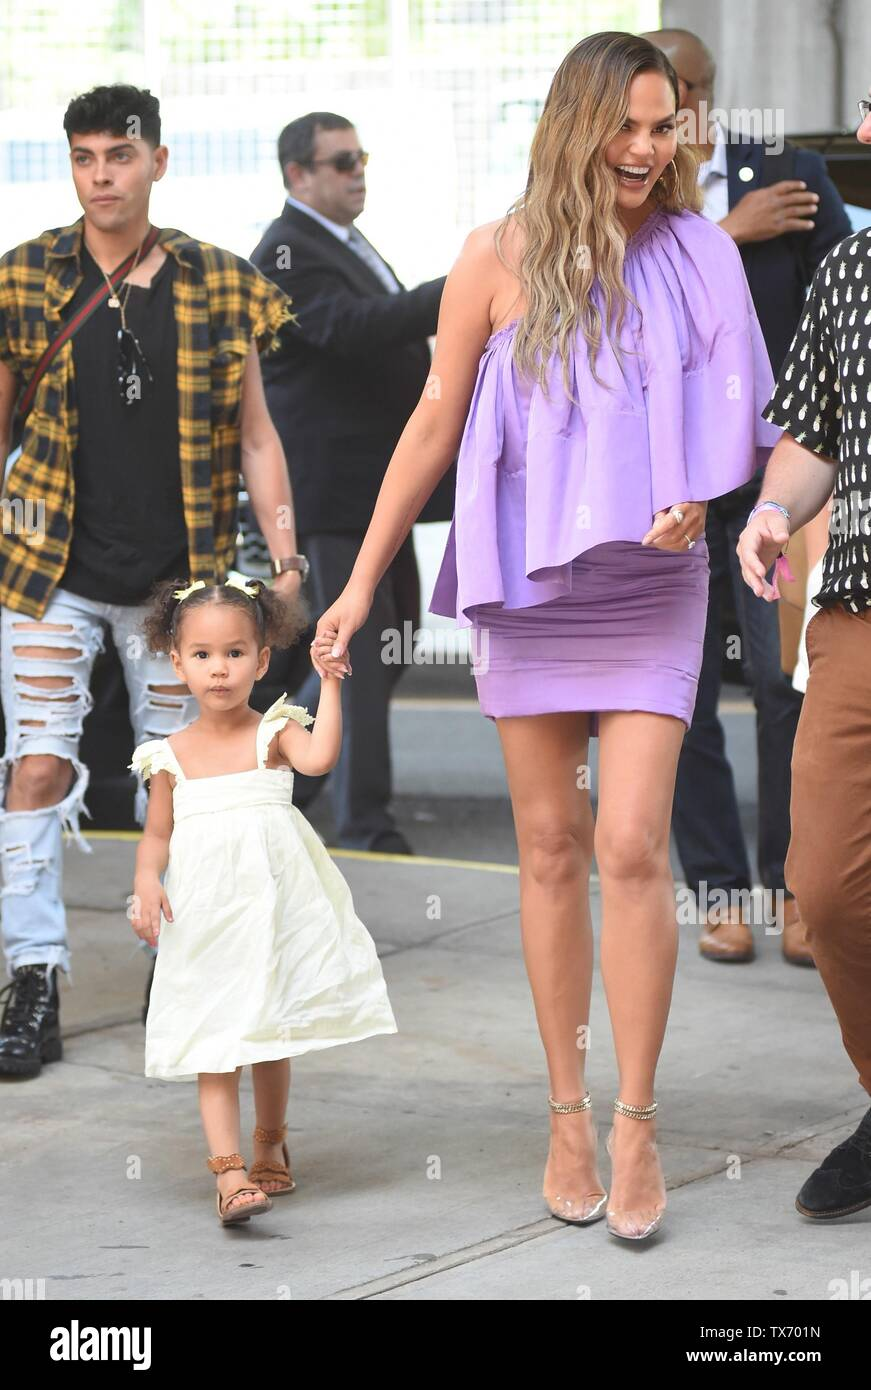 Luna Simone Stephens, Chrissy Teigen out and about for Celebrity Candids - SUN, , New York, NY June 23, 2019. Photo By: Kristin Callahan/Everett Collection - Stock Image